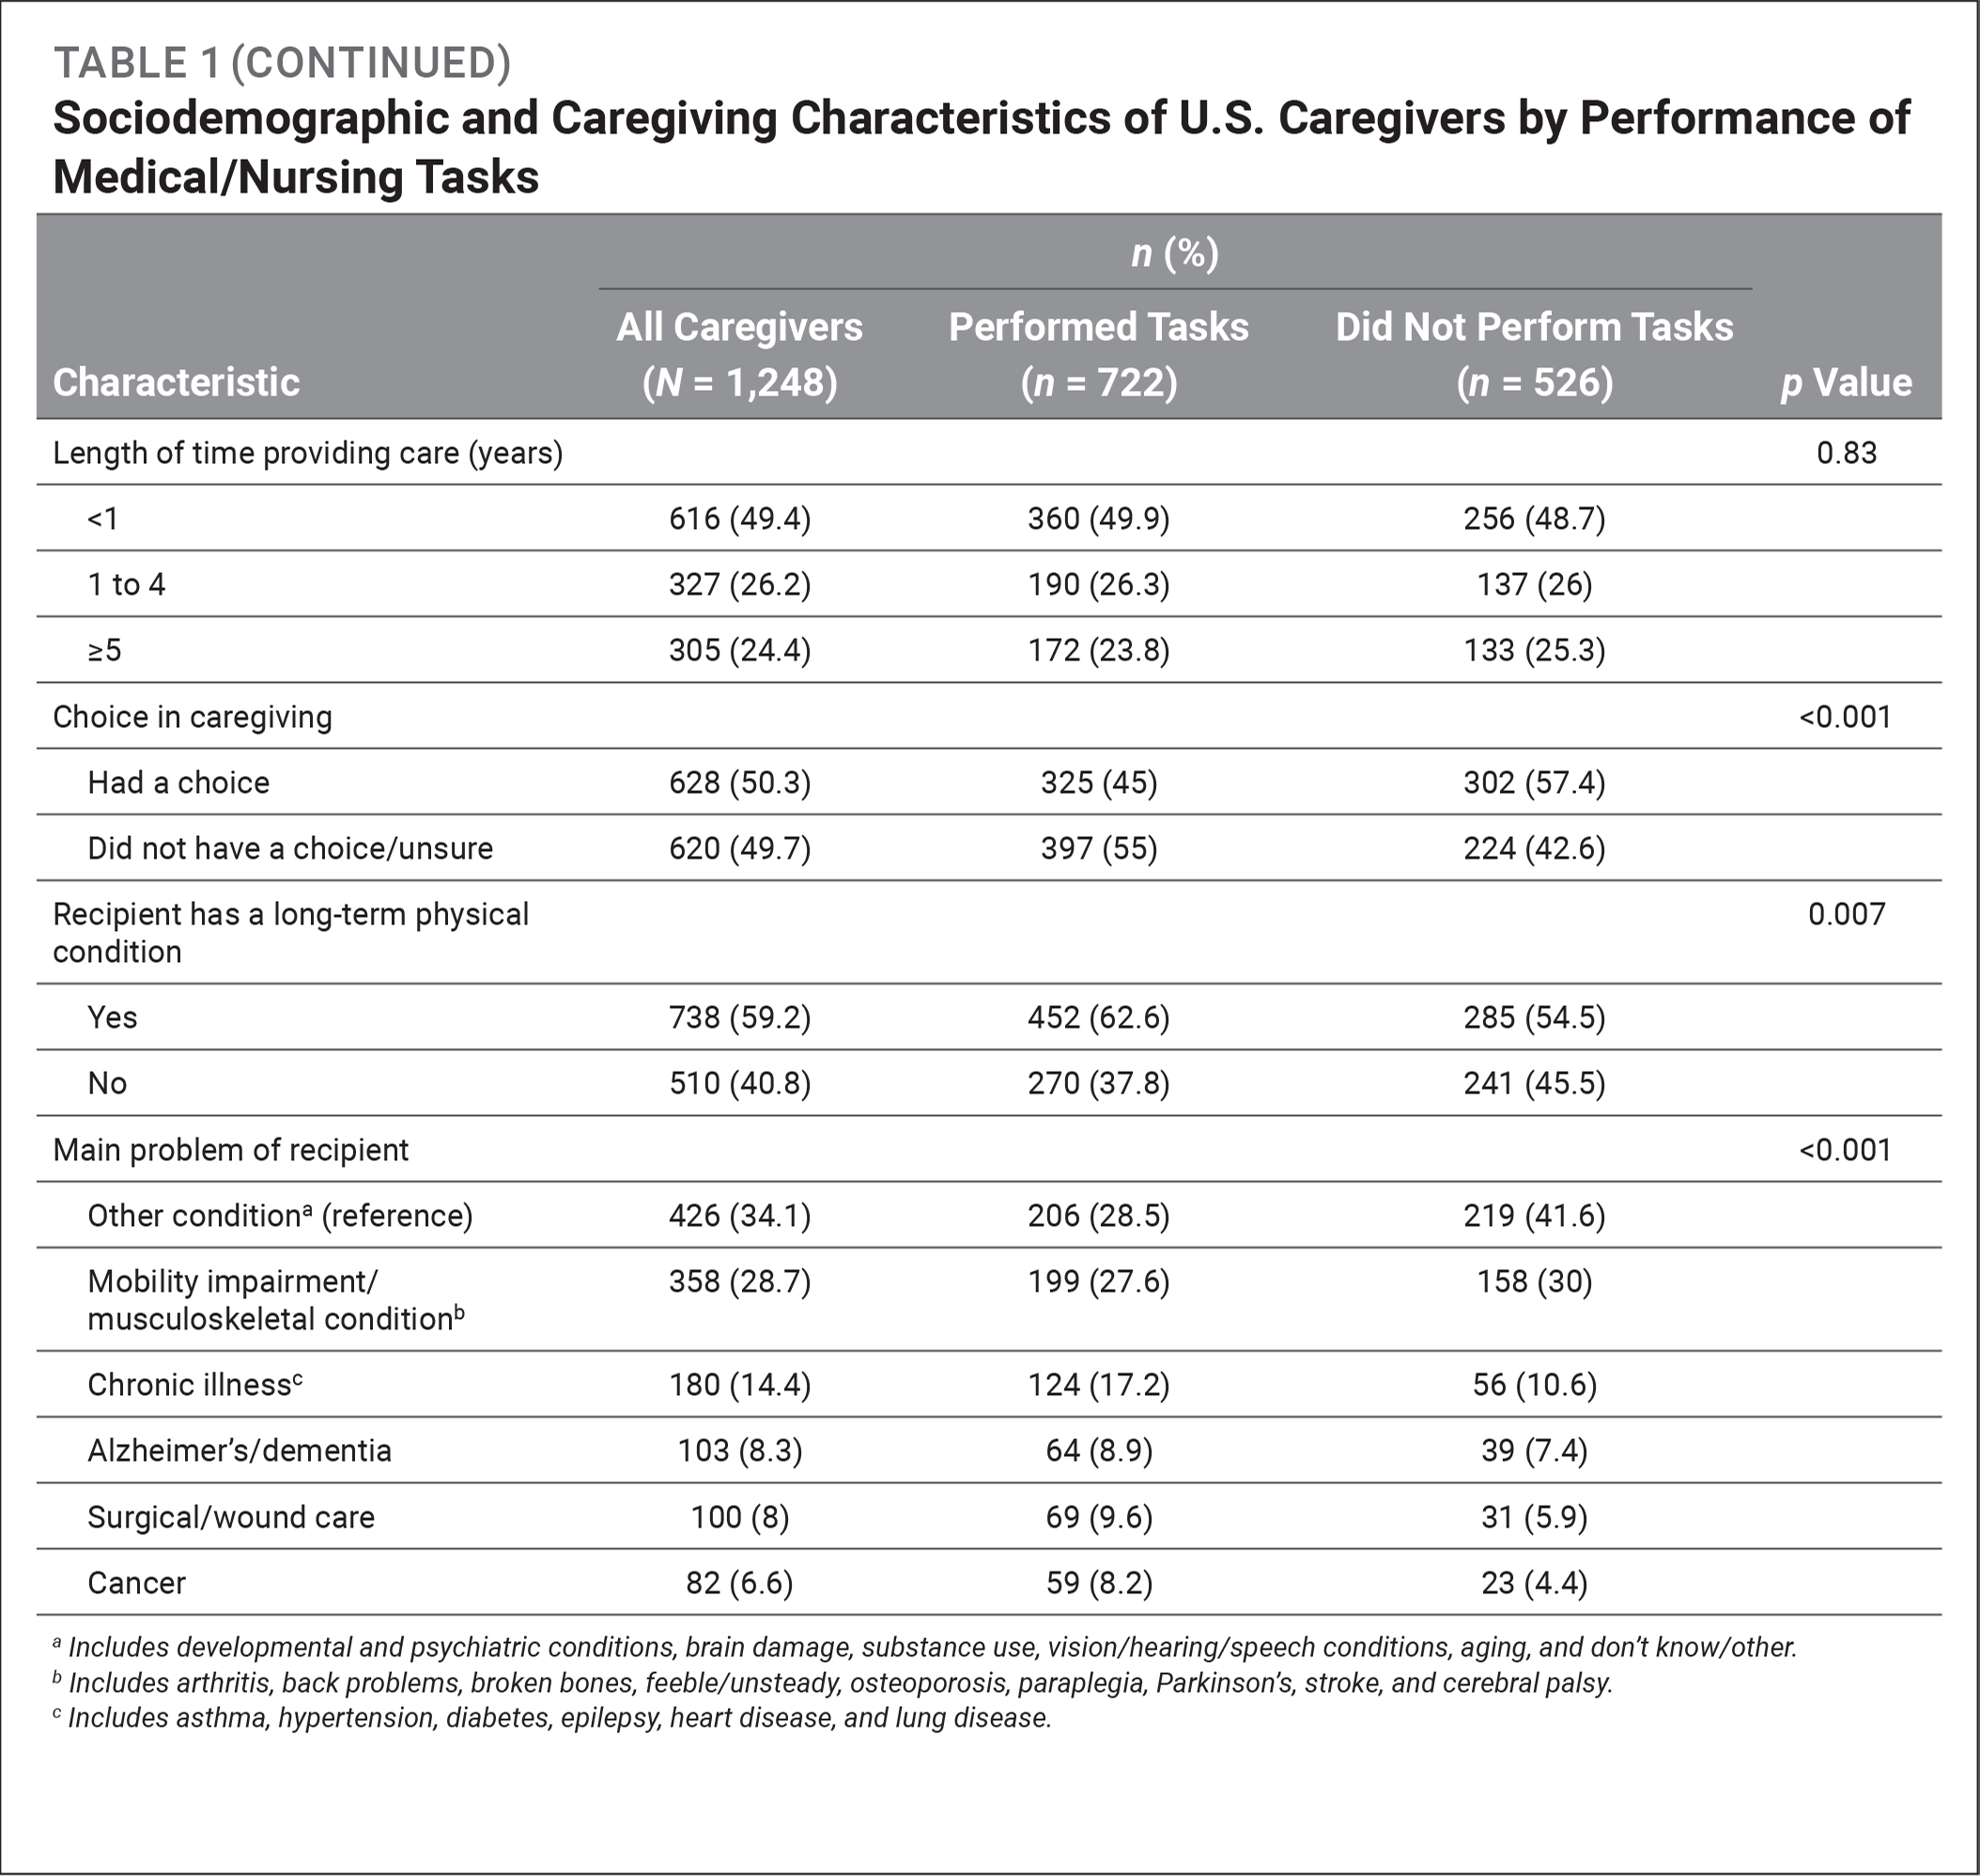 Sociodemographic and Caregiving Characteristics of U.S. Caregivers by Performance of Medical/Nursing Tasks